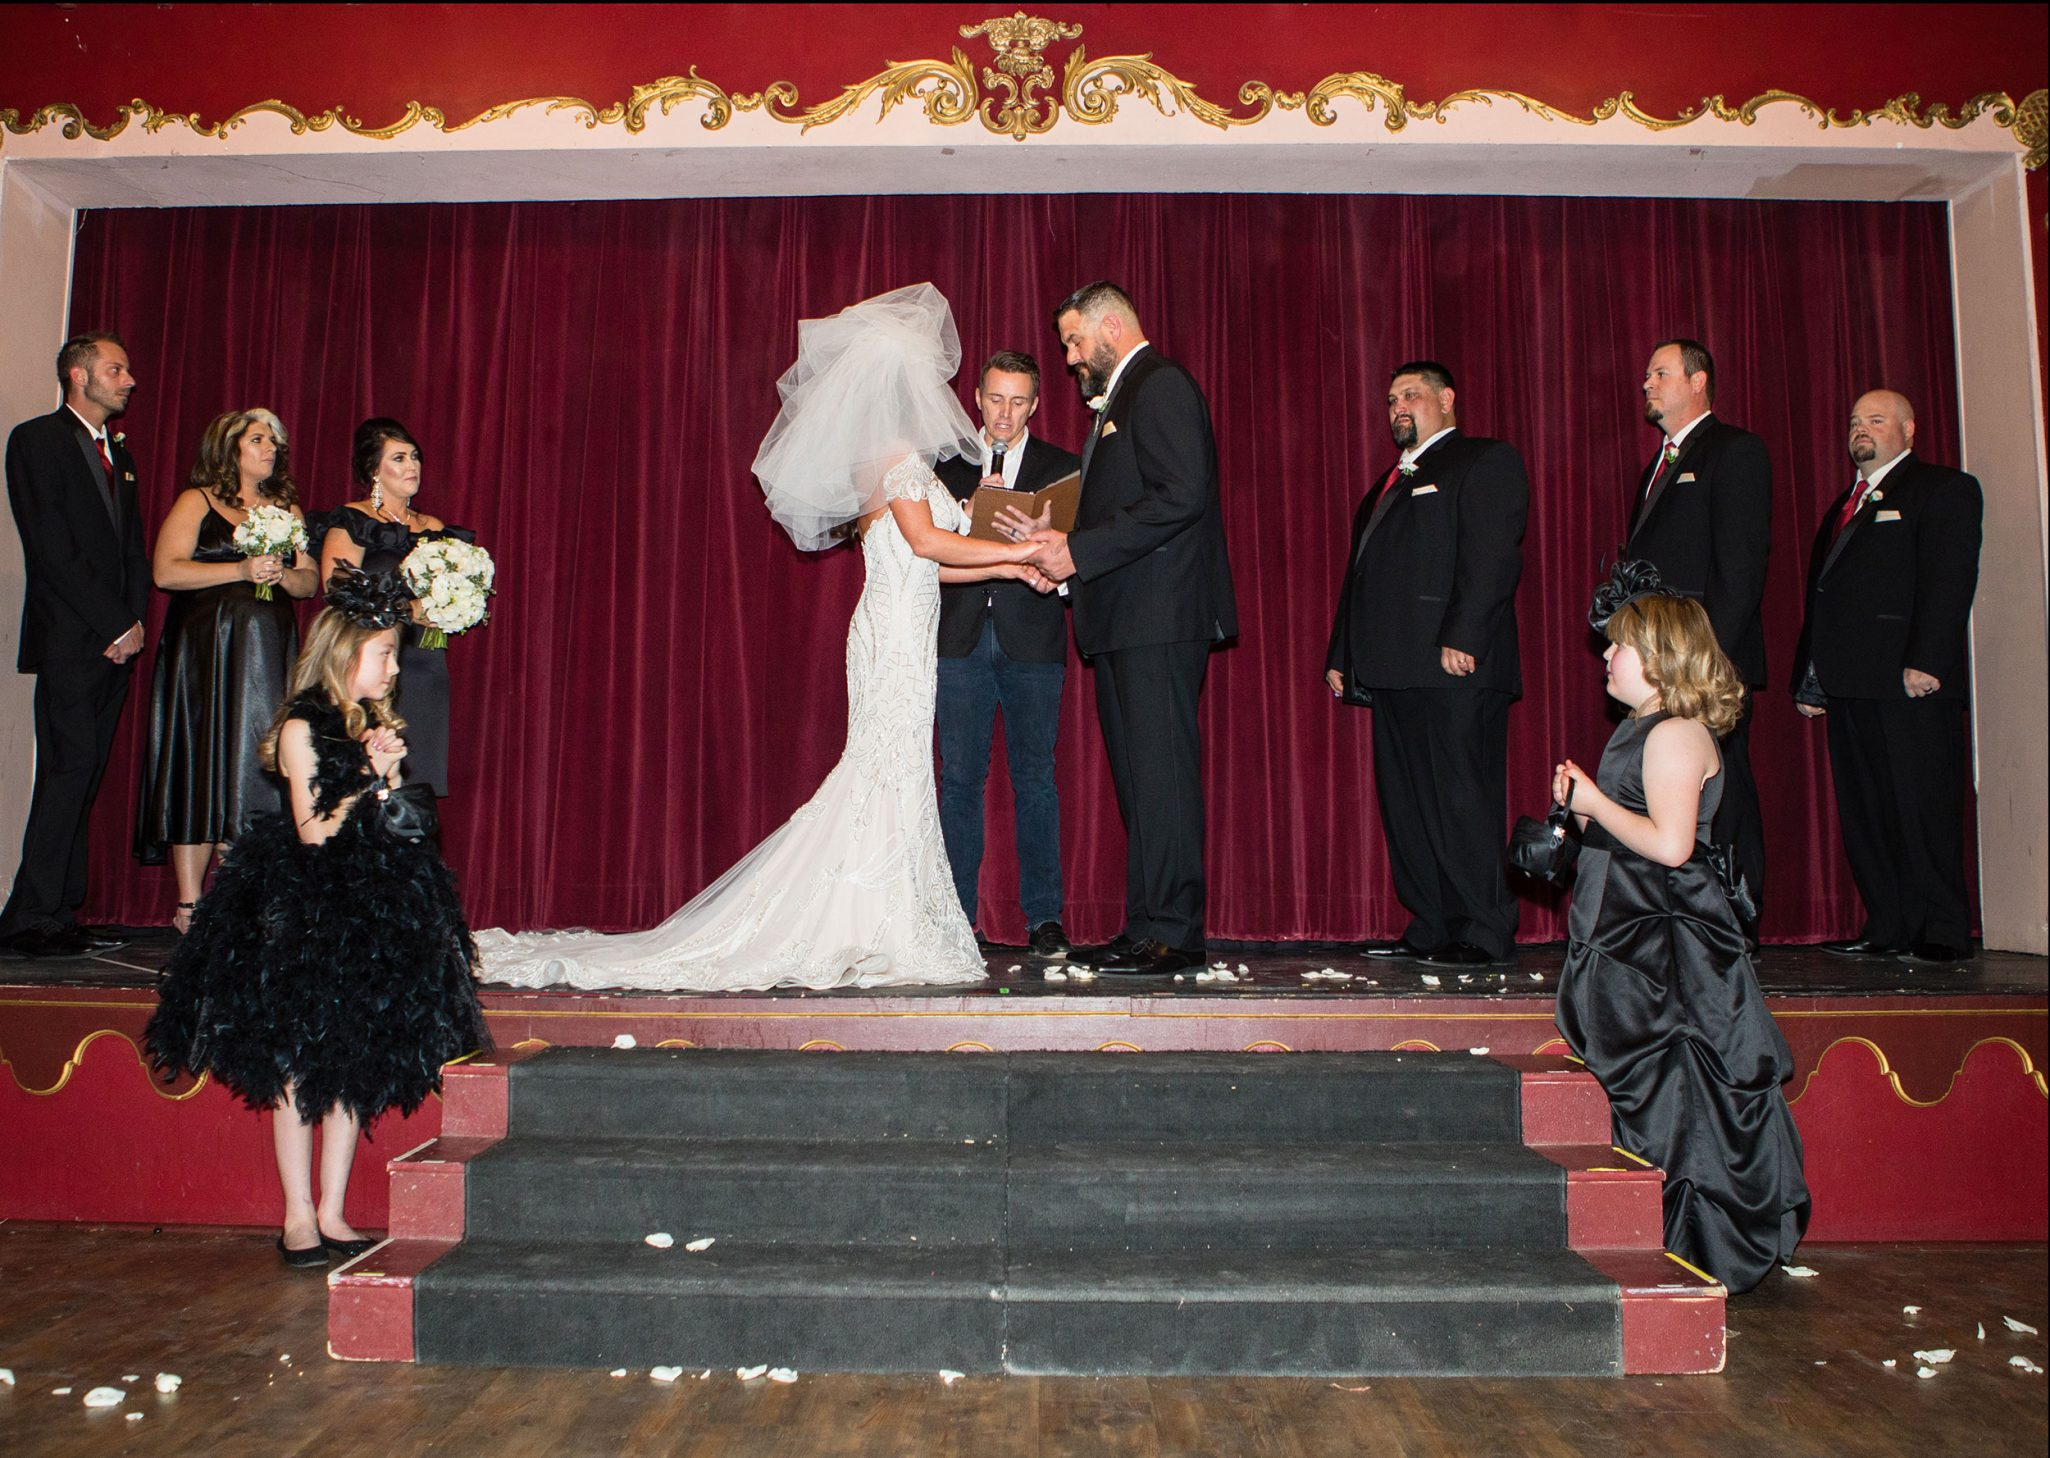 Wedding ceremony on the Henry Strater Stage at The Strater Hotel, Durango CO